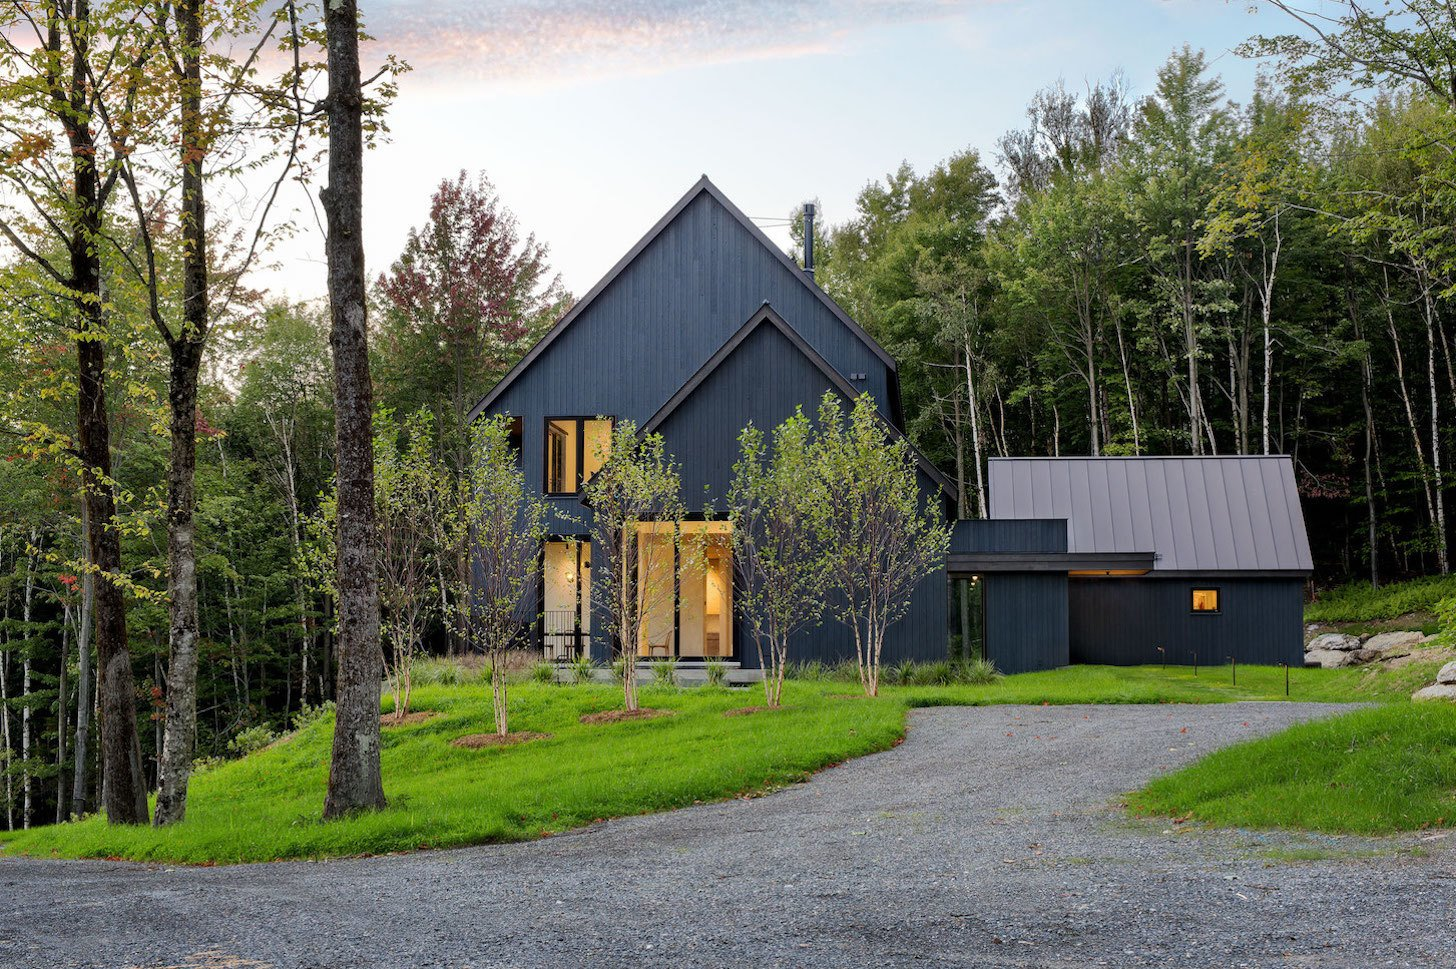 Exterior, House Building Type, Wood Siding Material, Metal Roof Material, and Gable RoofLine  Elemental House by Elizabeth Herrmann Architecture + Design